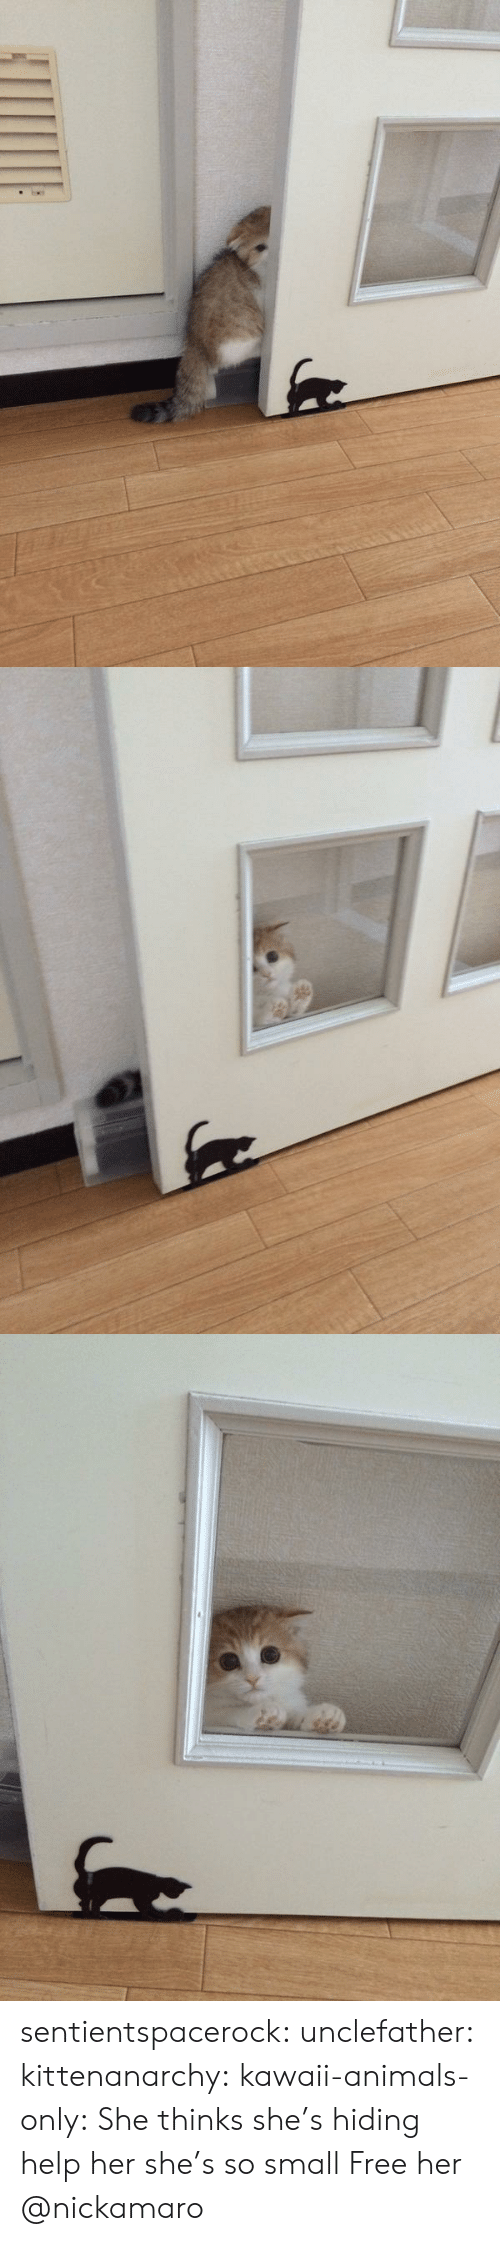 Free Her: sentientspacerock:  unclefather:  kittenanarchy:  kawaii-animals-only:  She thinks she's hiding  help her she's so small   Free her   @nickamaro